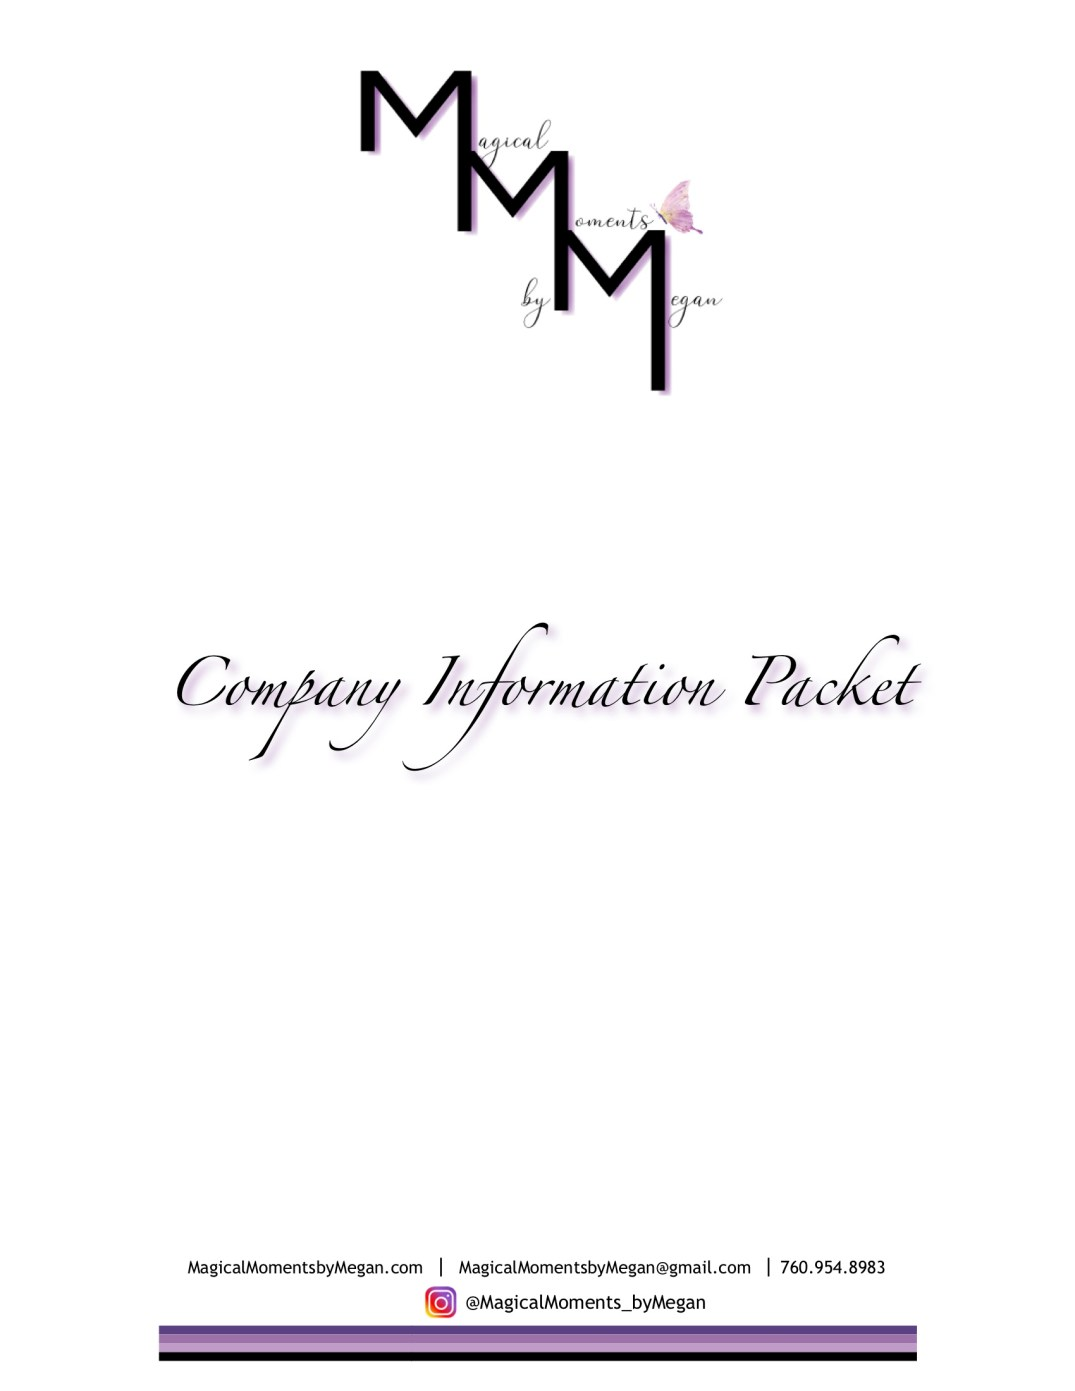 Magical Moments by Megan - Company Information Packet_1